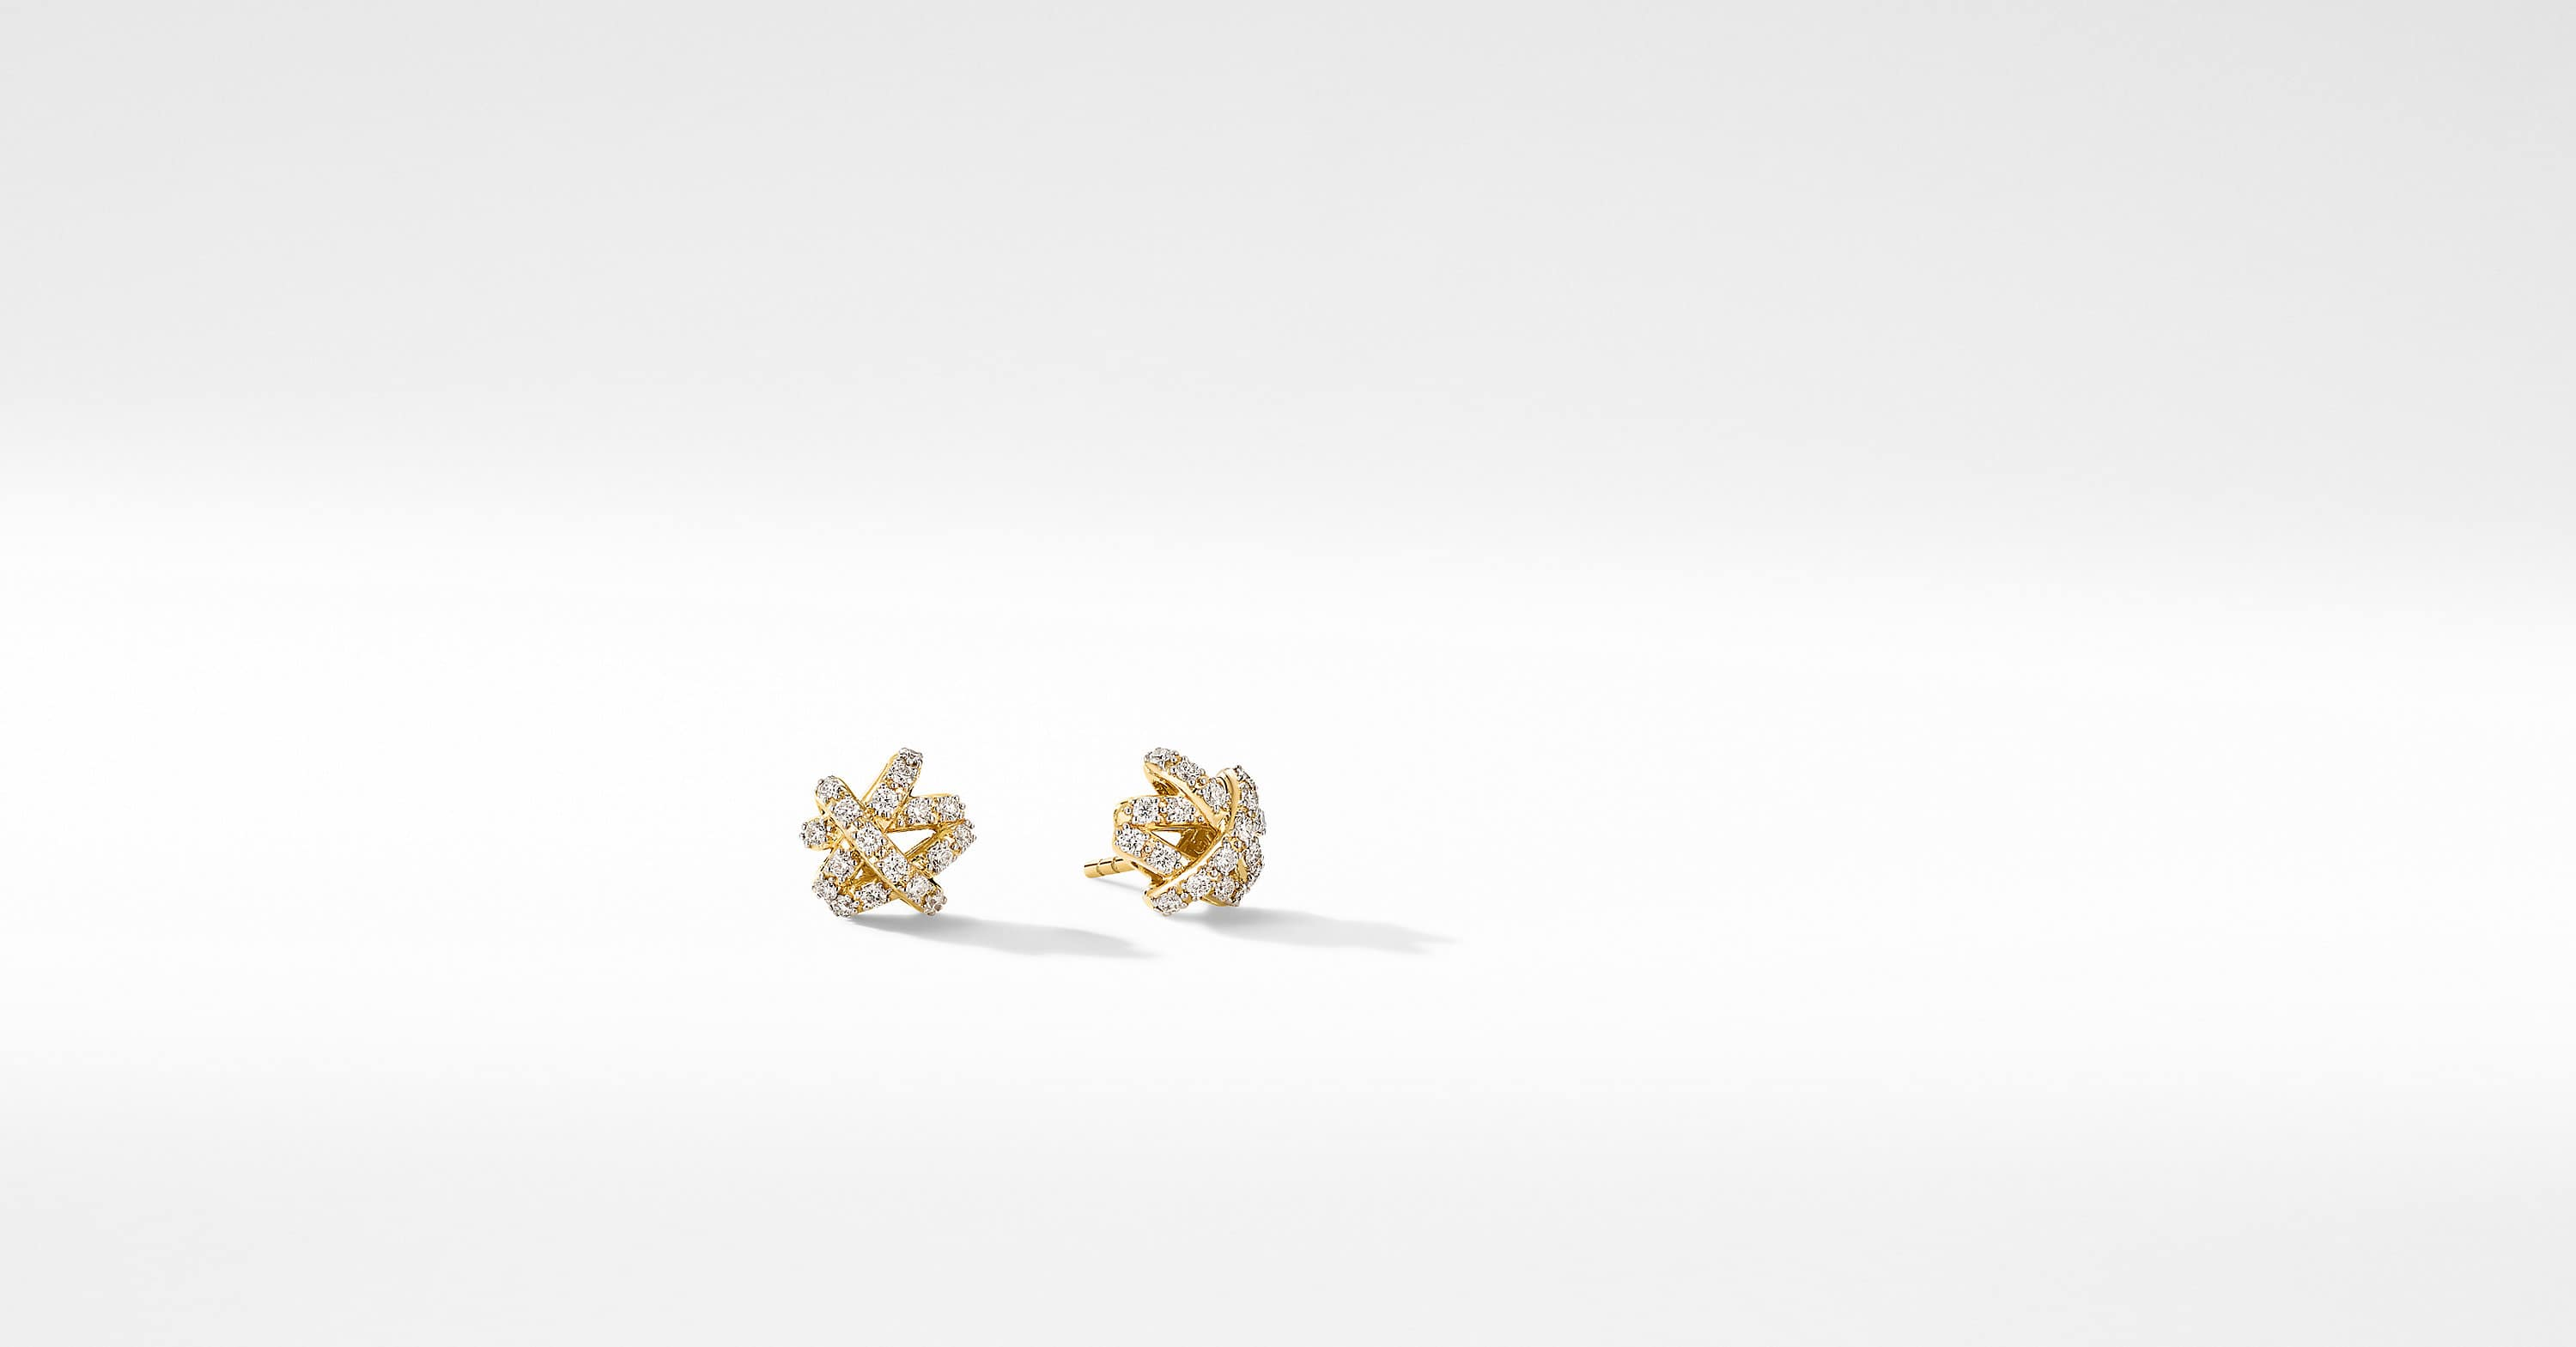 The Crossover Collection Stud Earrings in 18K Yellow Gold with Full Pavé